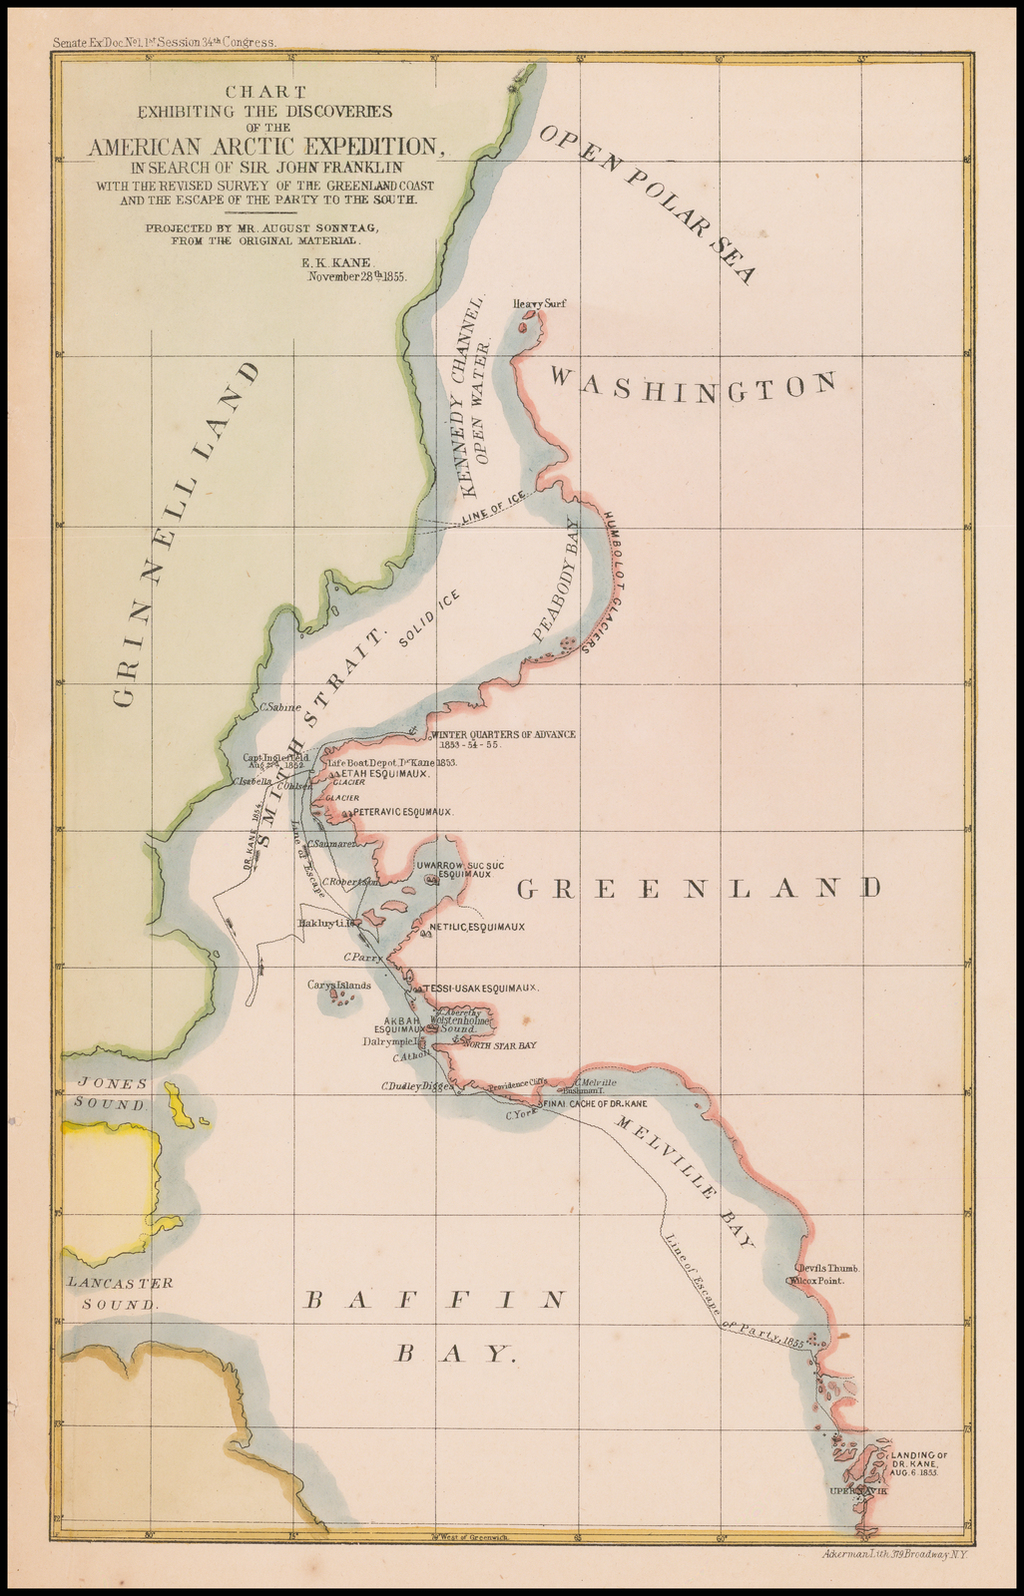 Chart Exhibiting The Discoveries of the American Arctic Expedition, In Search of John Franklin With The Revised Survey of theGreenland Coast and the Escape of the Party To the South.  Projected by Mr. August Sonntag, From the Original Material.  E. K. Kane.  November 28th 1855 By Ackerman Litho.